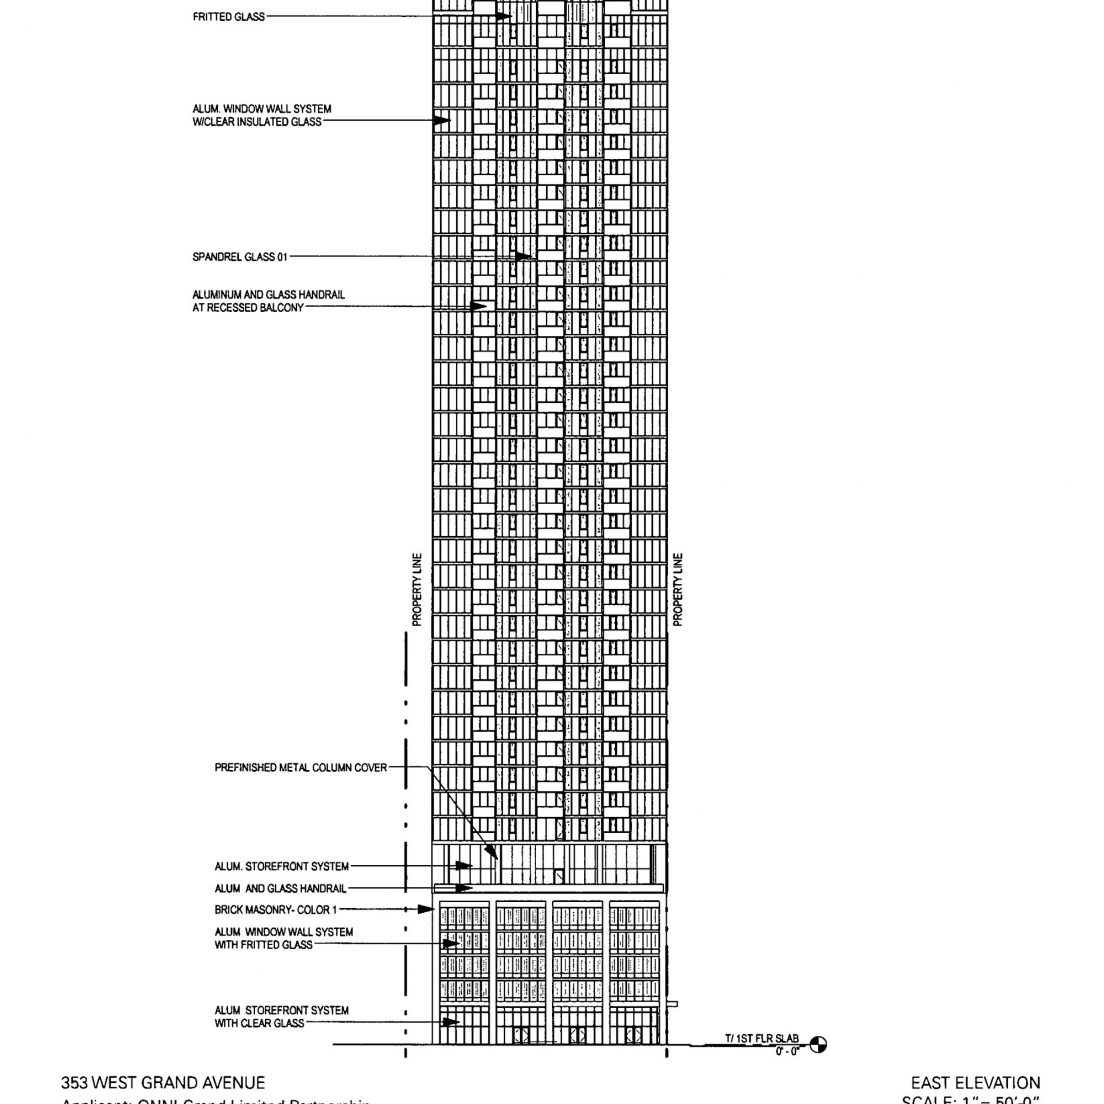 September 2018 diagram of 353 West Grand